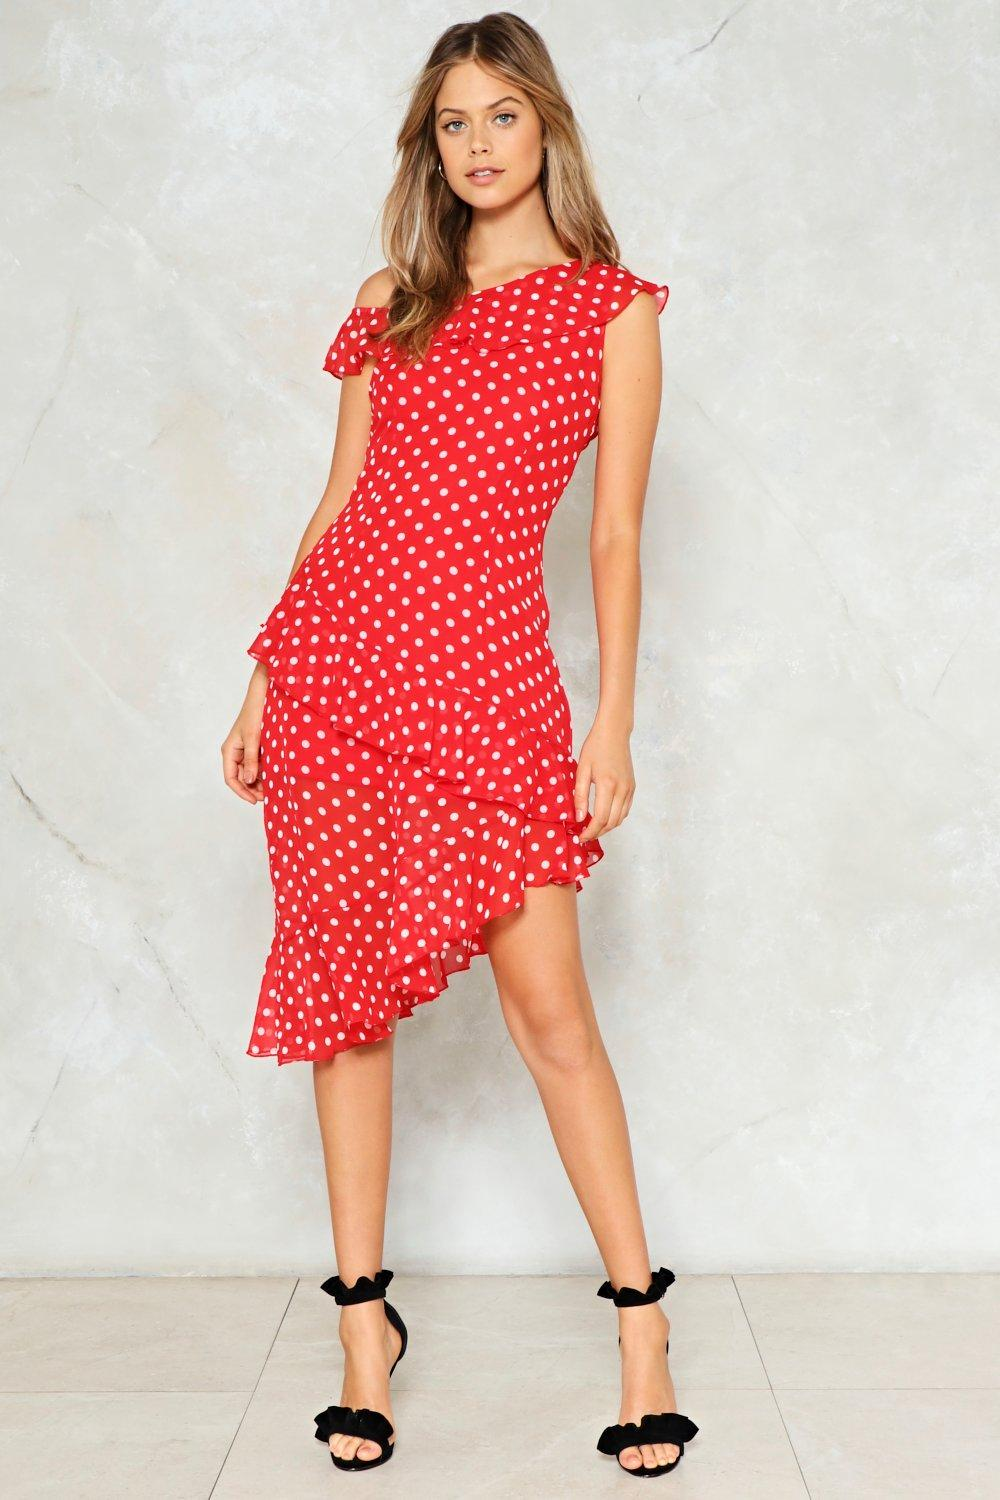 Some Like It Dot Polka Dot Dress | Shop Clothes at Nasty Gal!